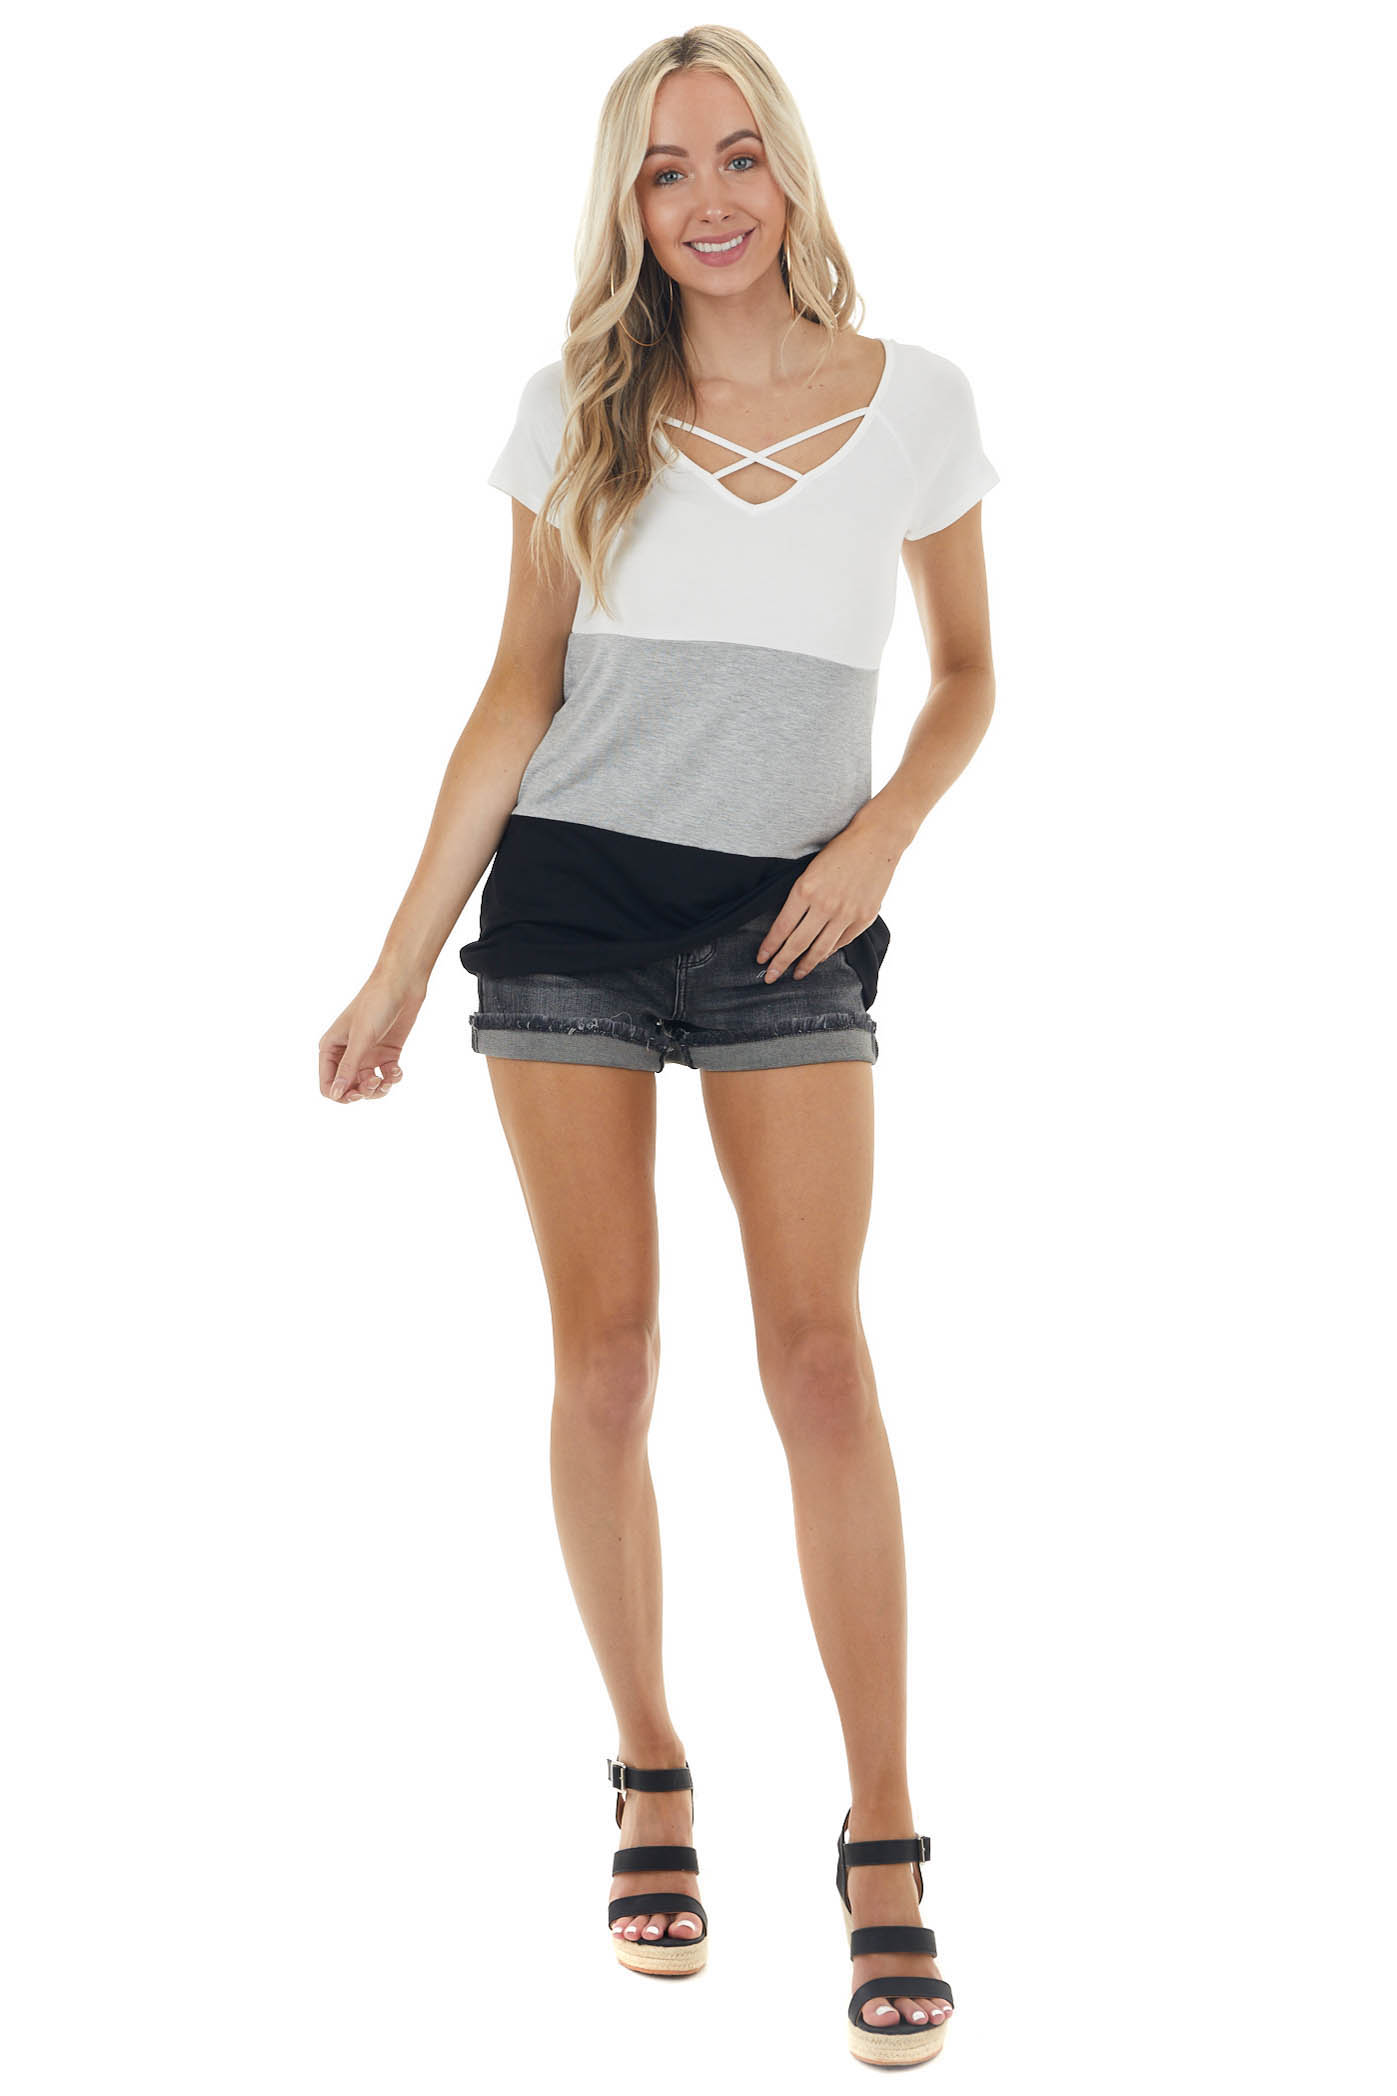 Heather Grey Colorblock Short Sleeve Top with Caged Detail